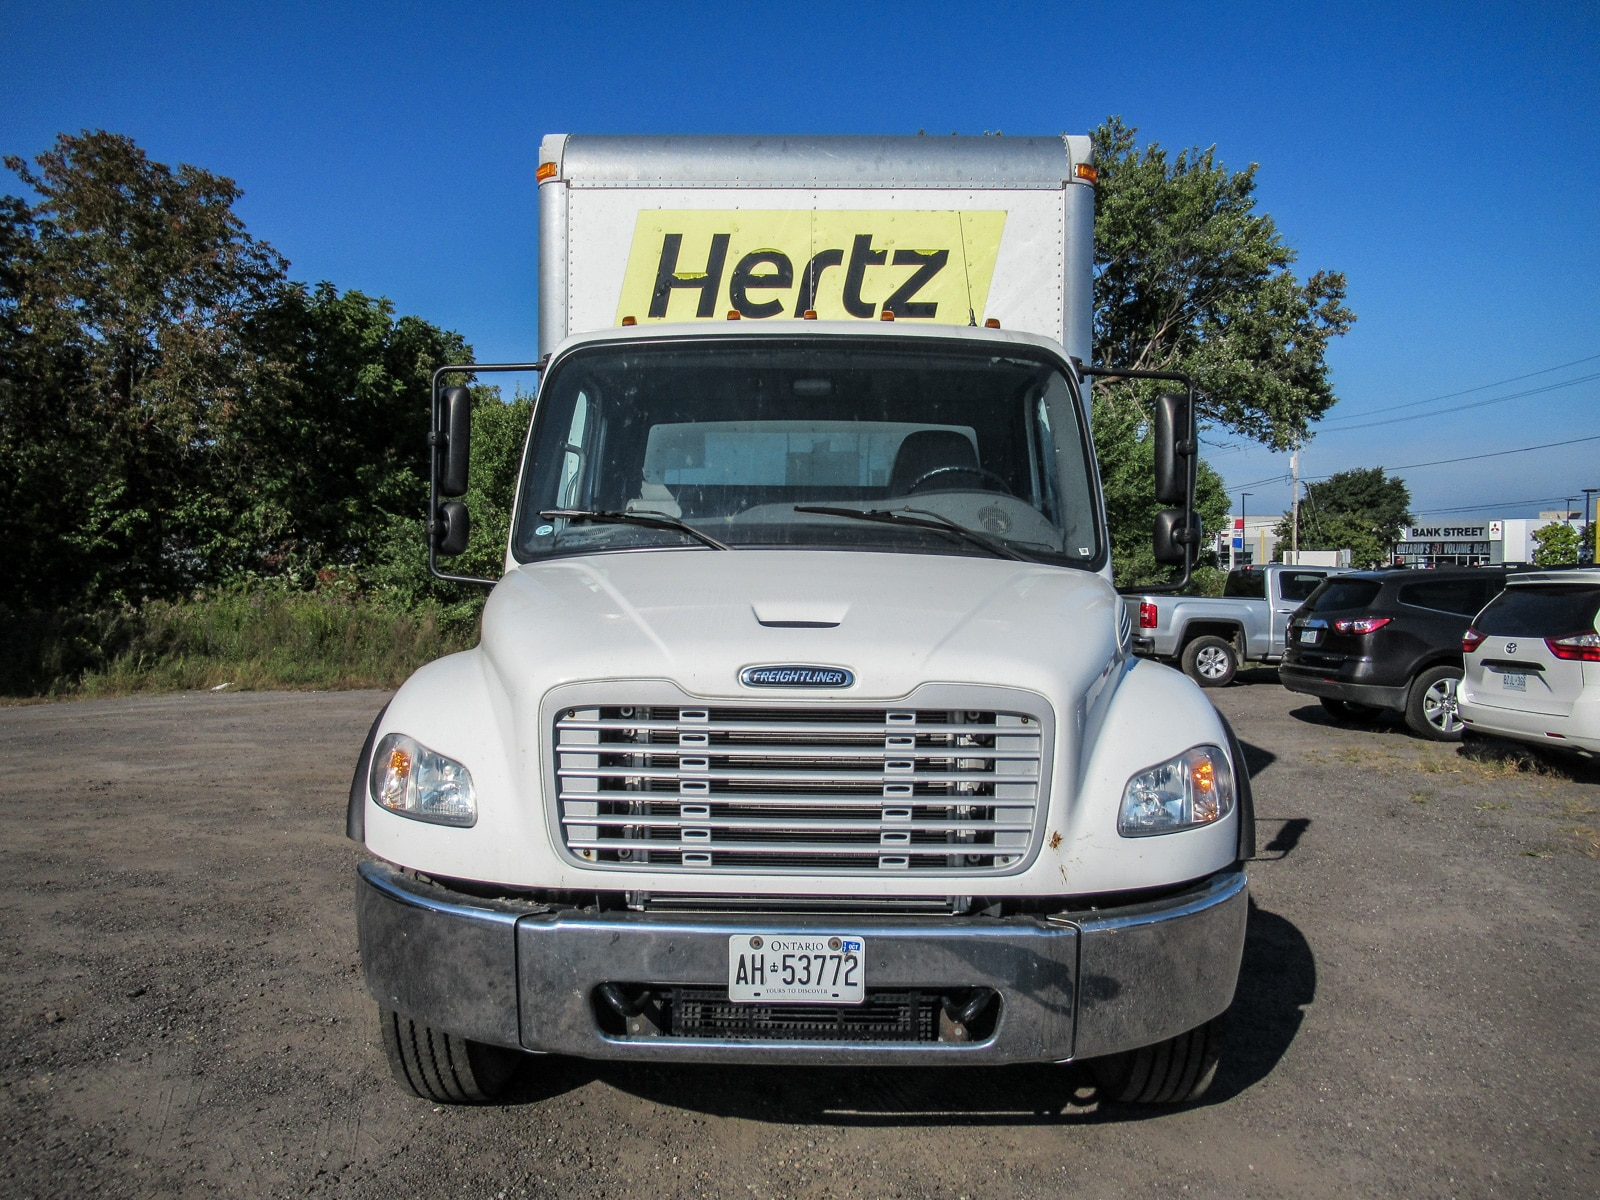 Used rental cars Inventory for Hertz Car Sales in OTTAWA